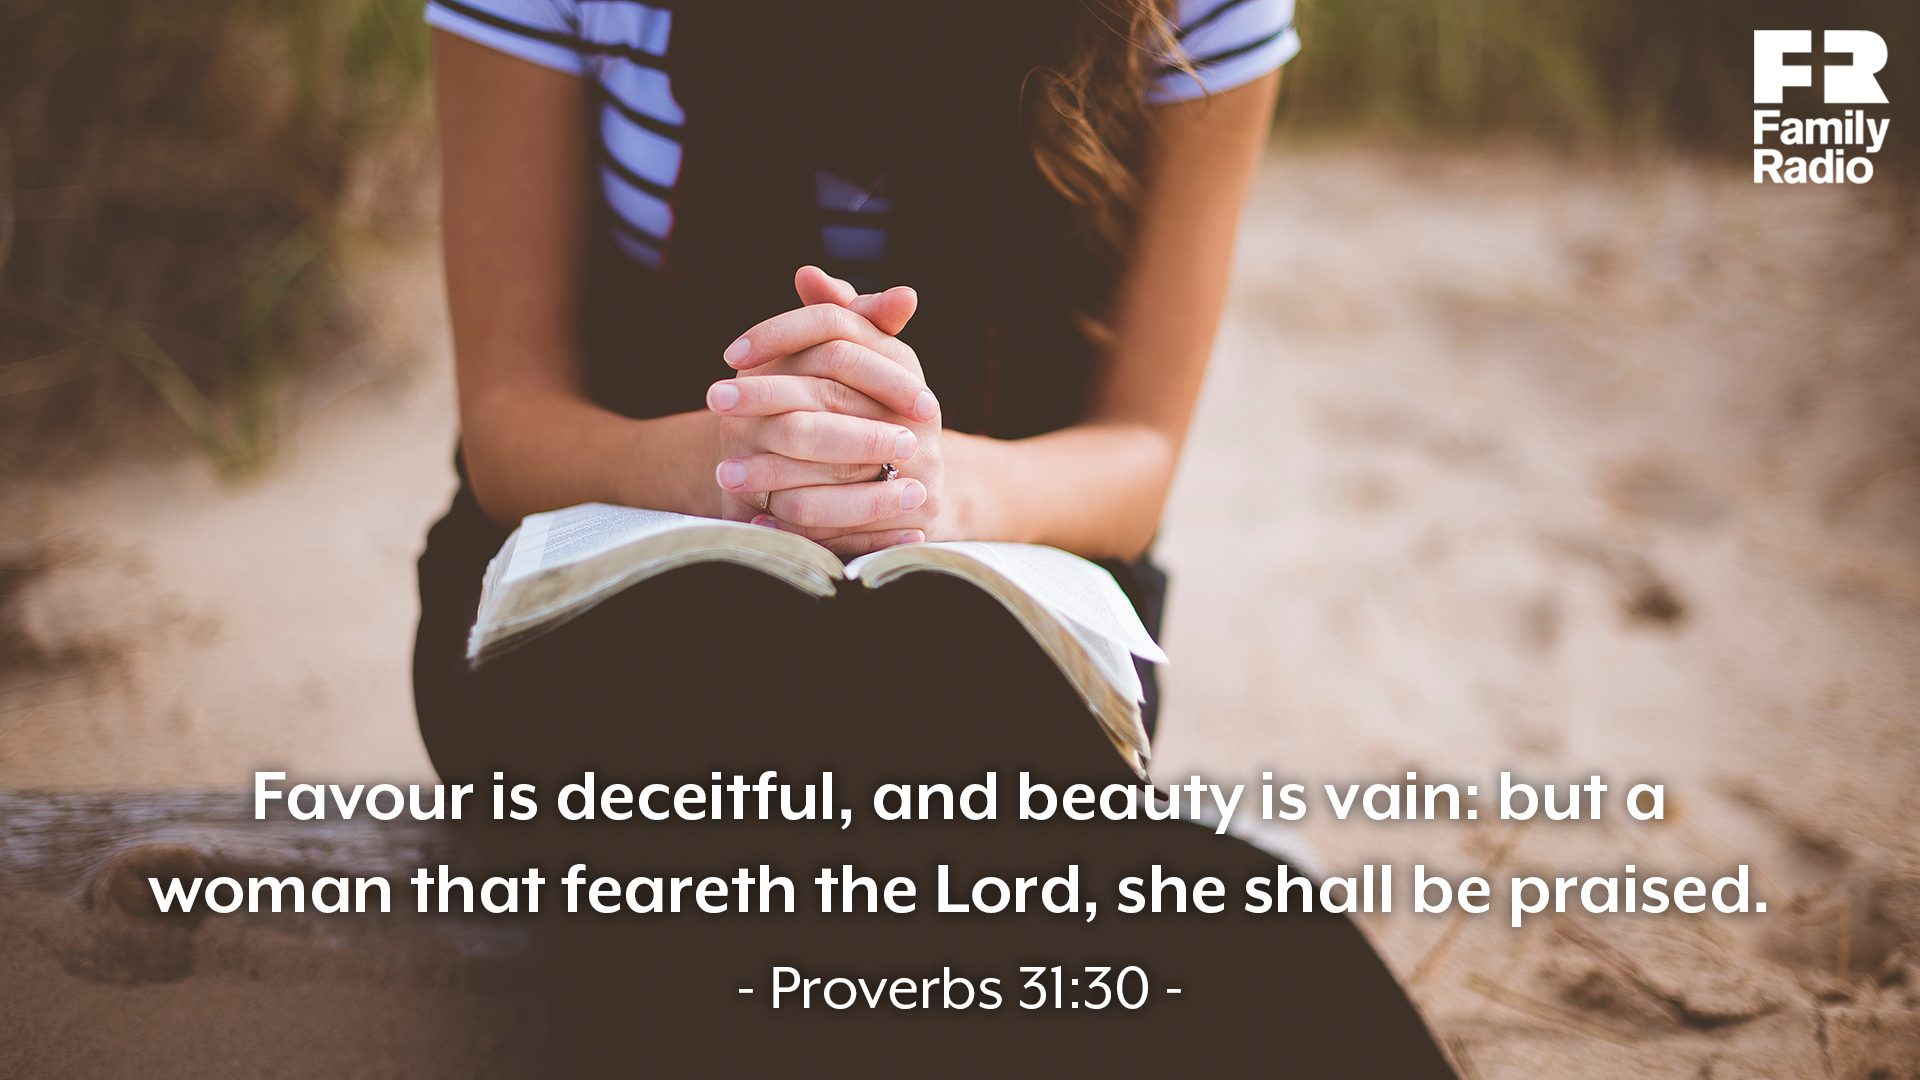 """Favour is deceitful, and beauty is vain: but a woman that feareth the Lord, she shall be praised."""